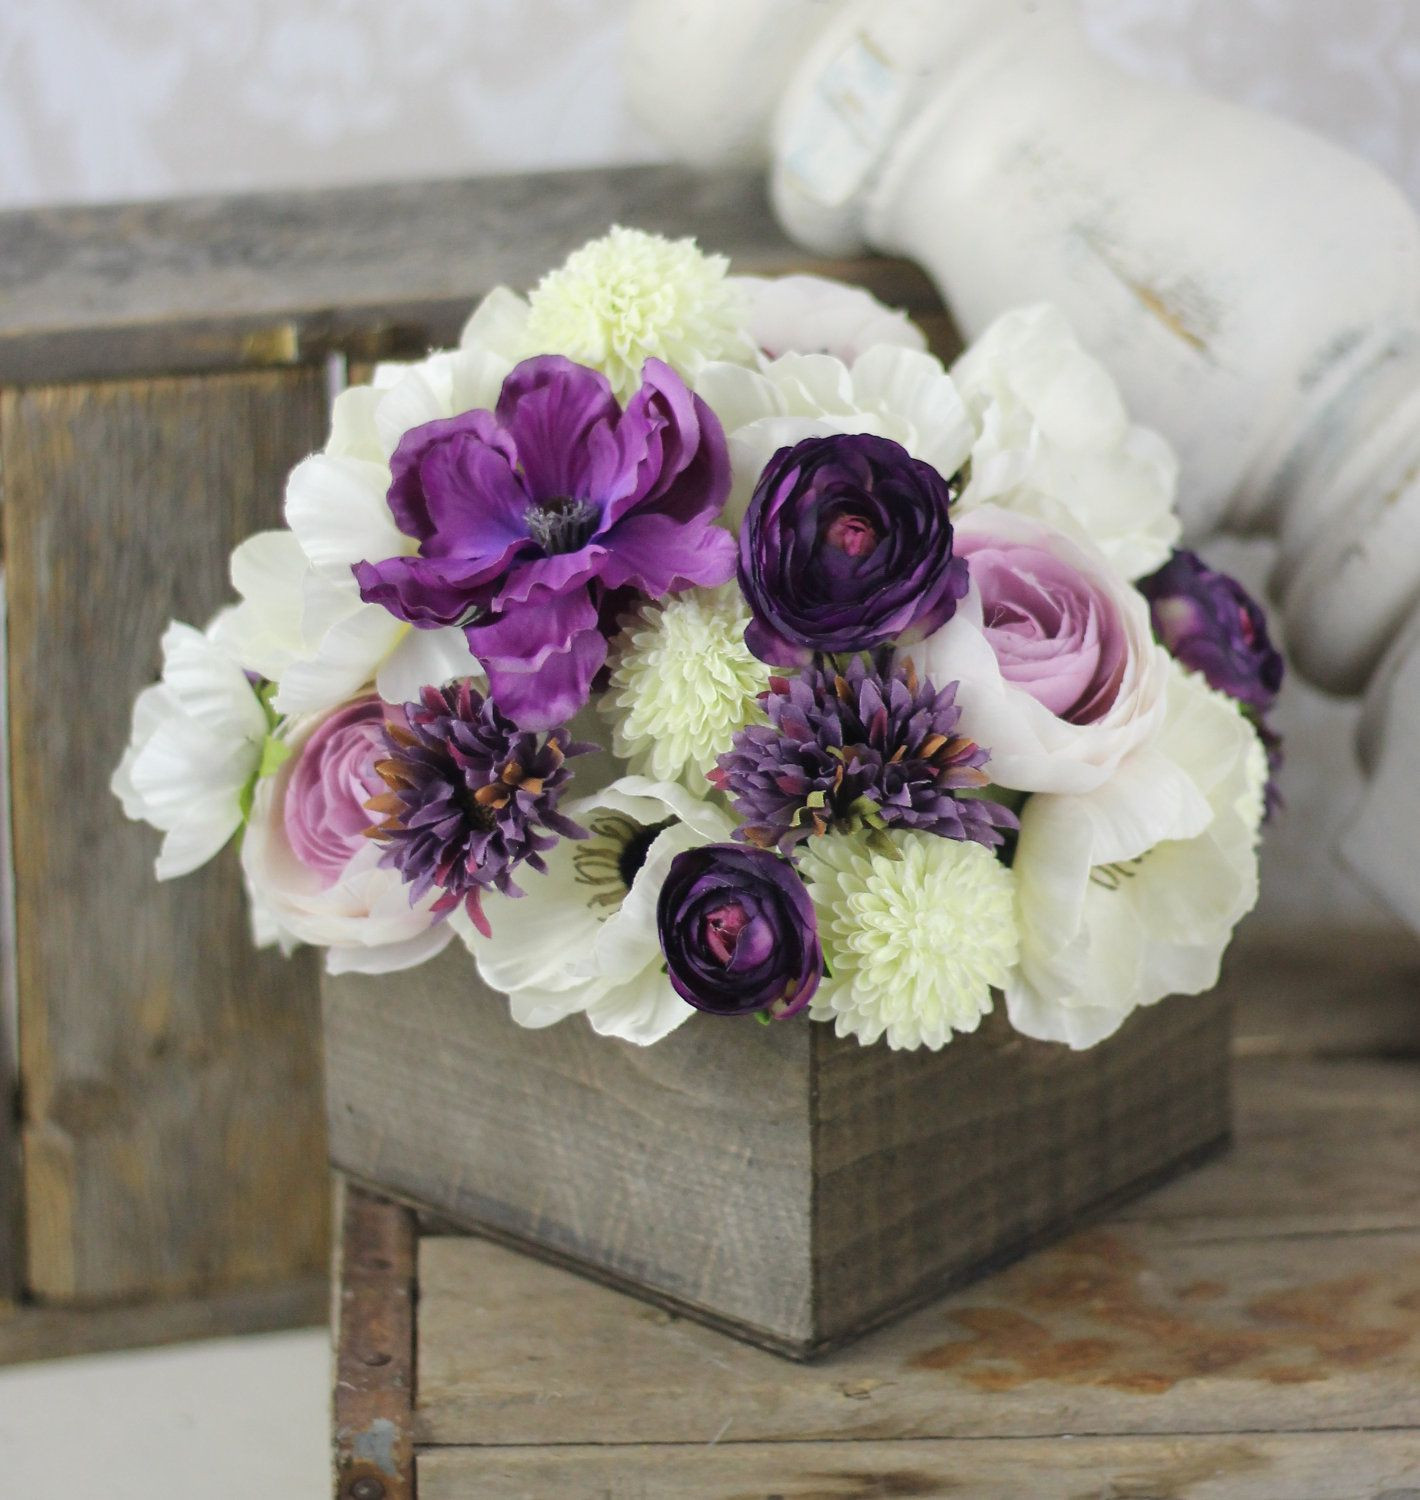 Wedding Centerpiece Arrangement Silk Flowers Rustic Chic Wedding Decor $125 00 via Etsy